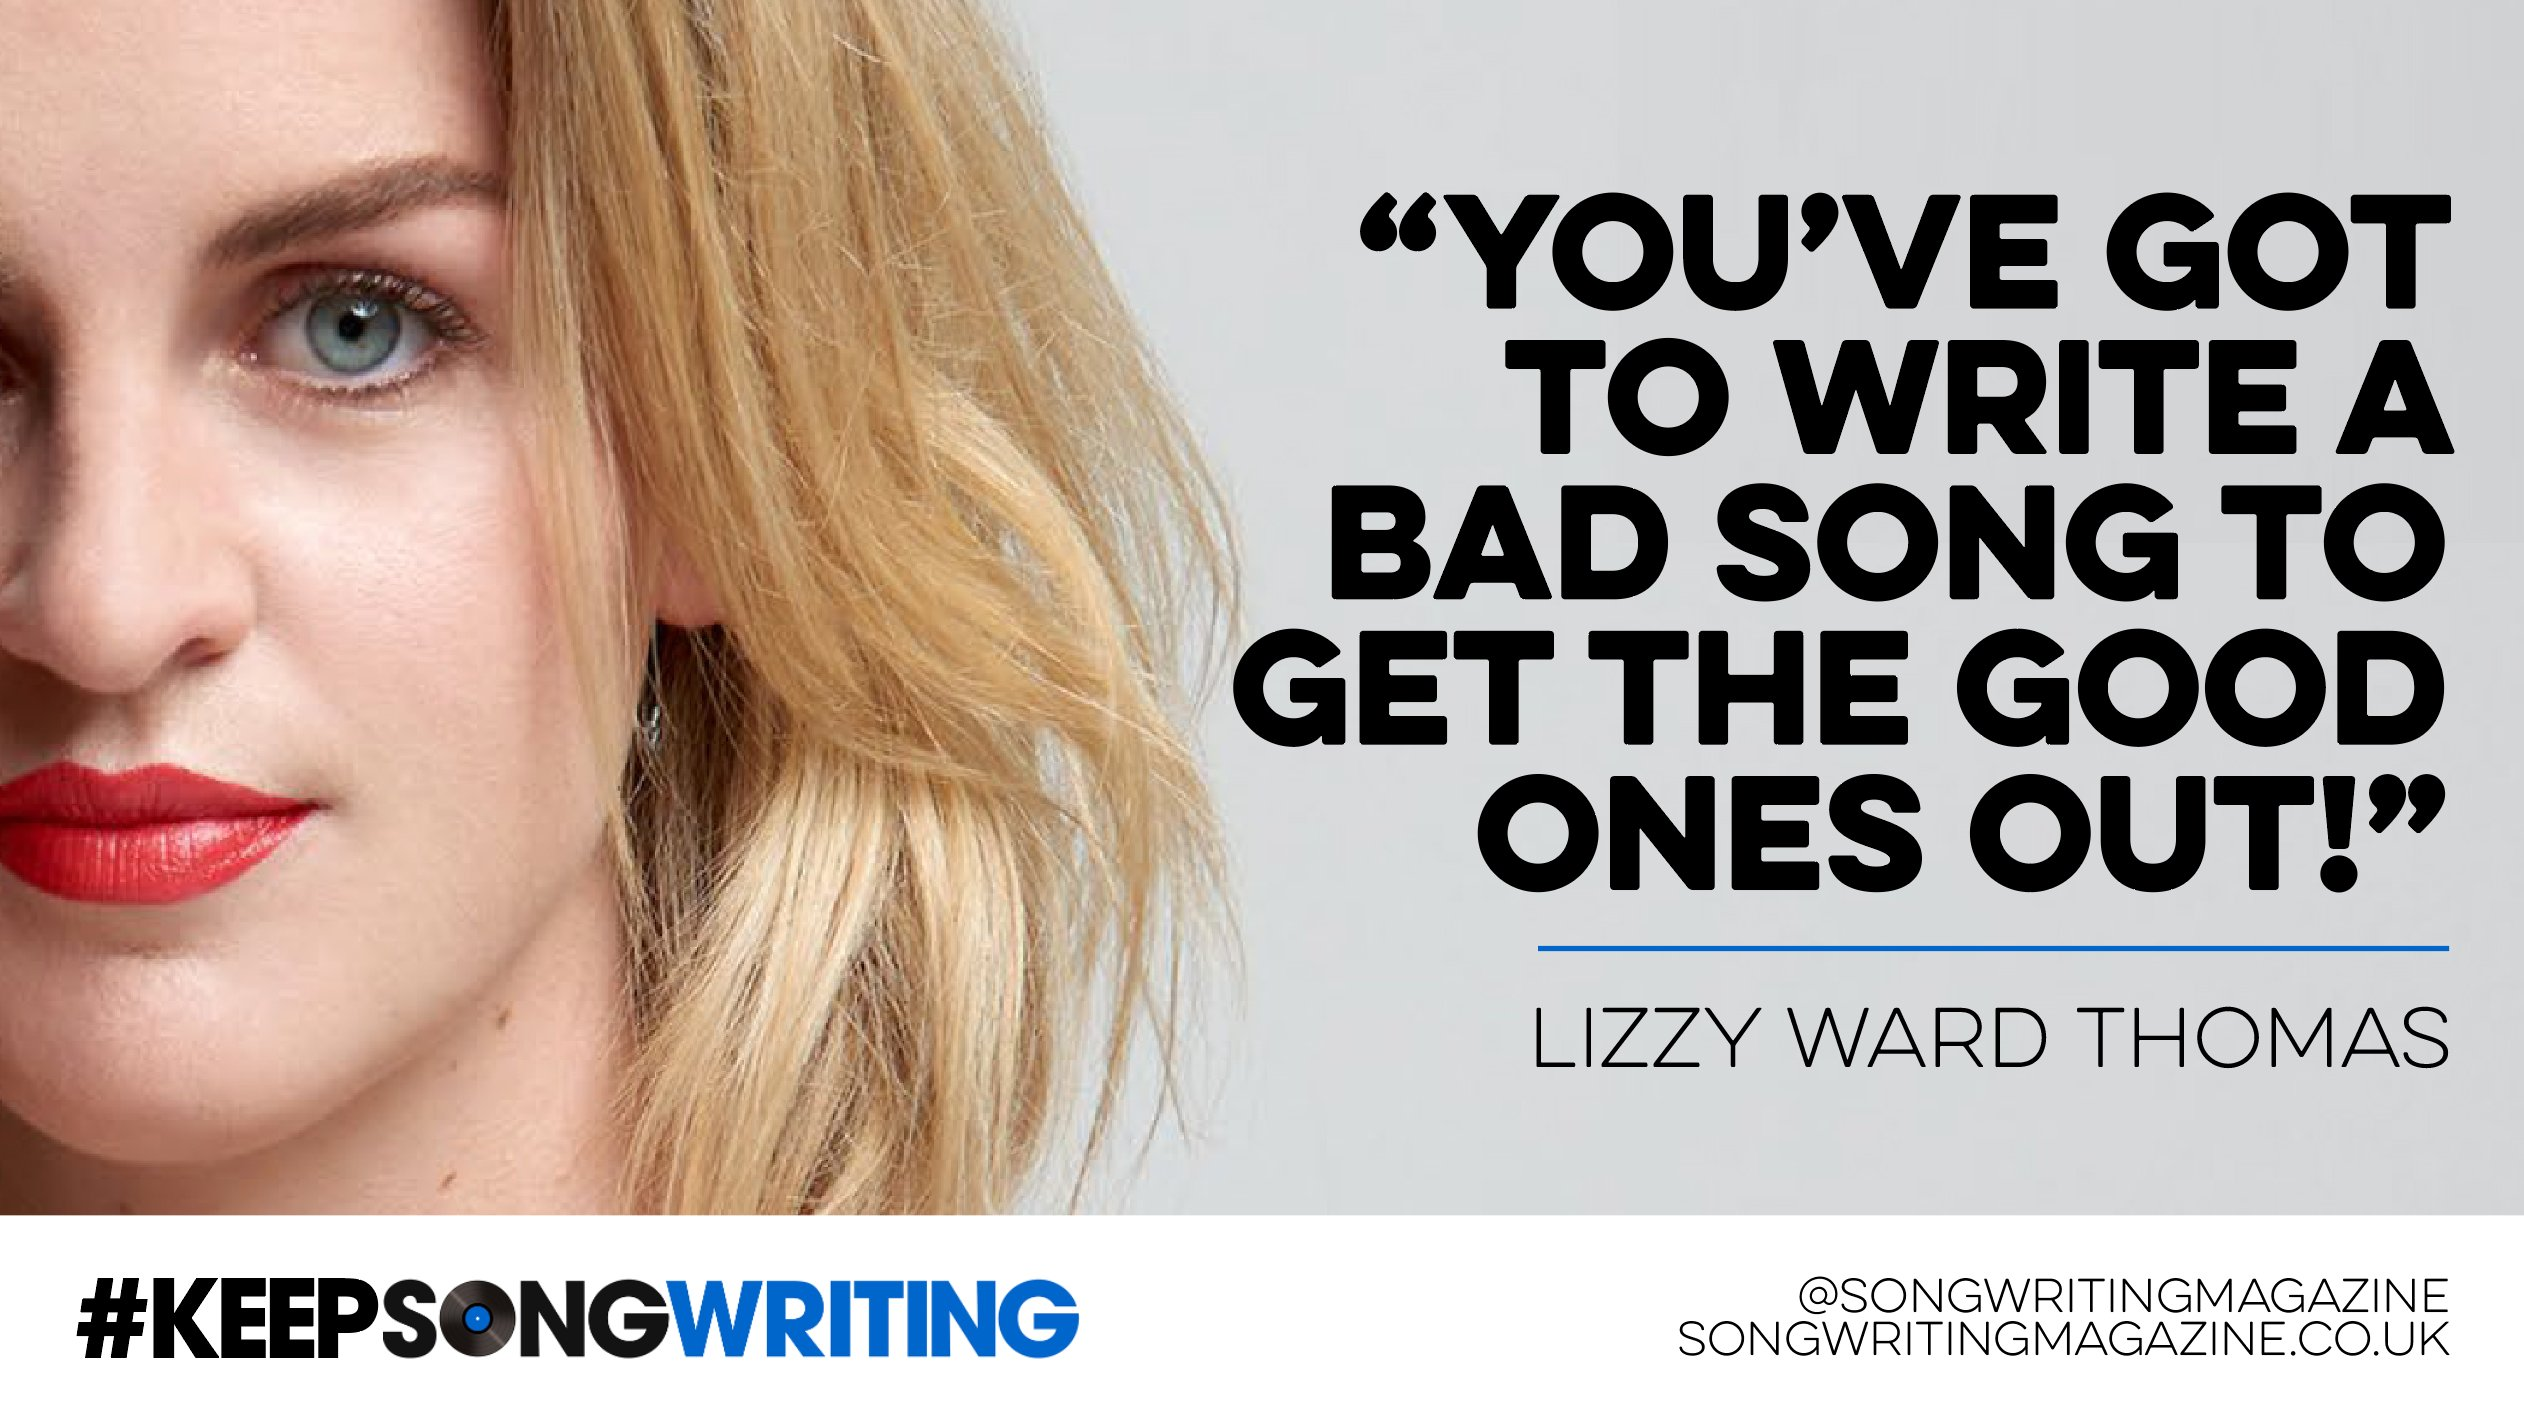 """""""You've got to write a bad song...-youve-got-write-bad-song-get-good-ones-out-jpg"""